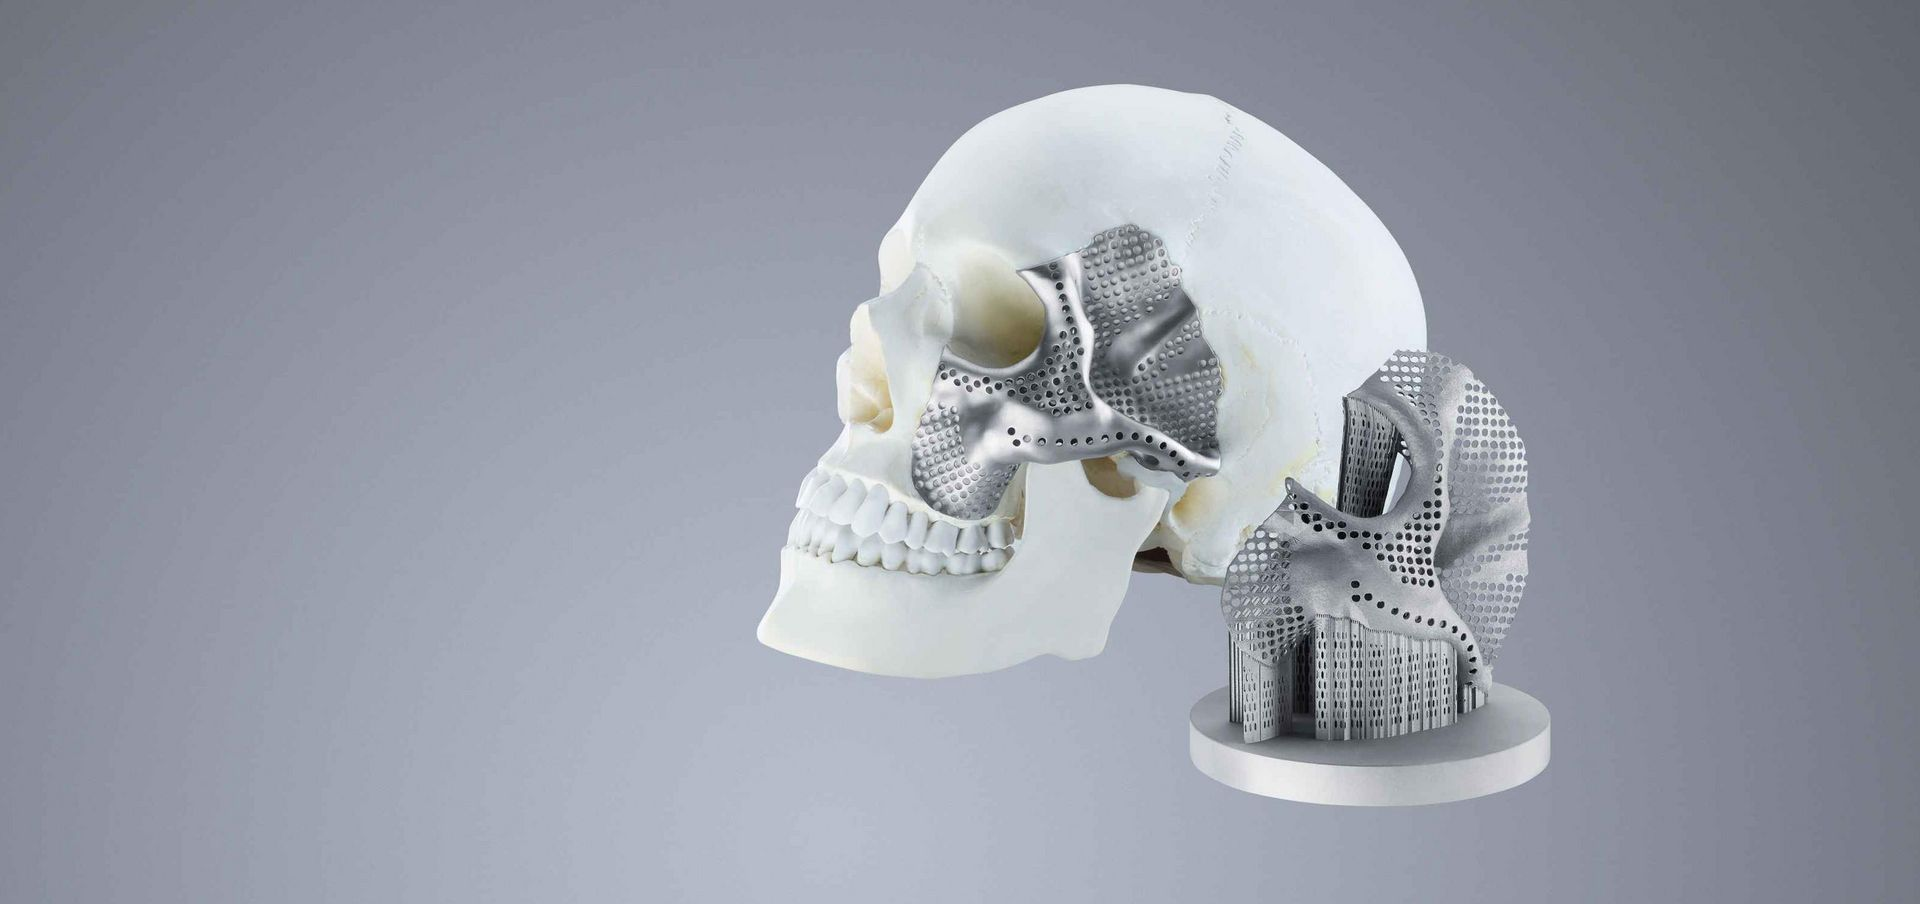 3D printed medical implants for half the world | TRUMPF